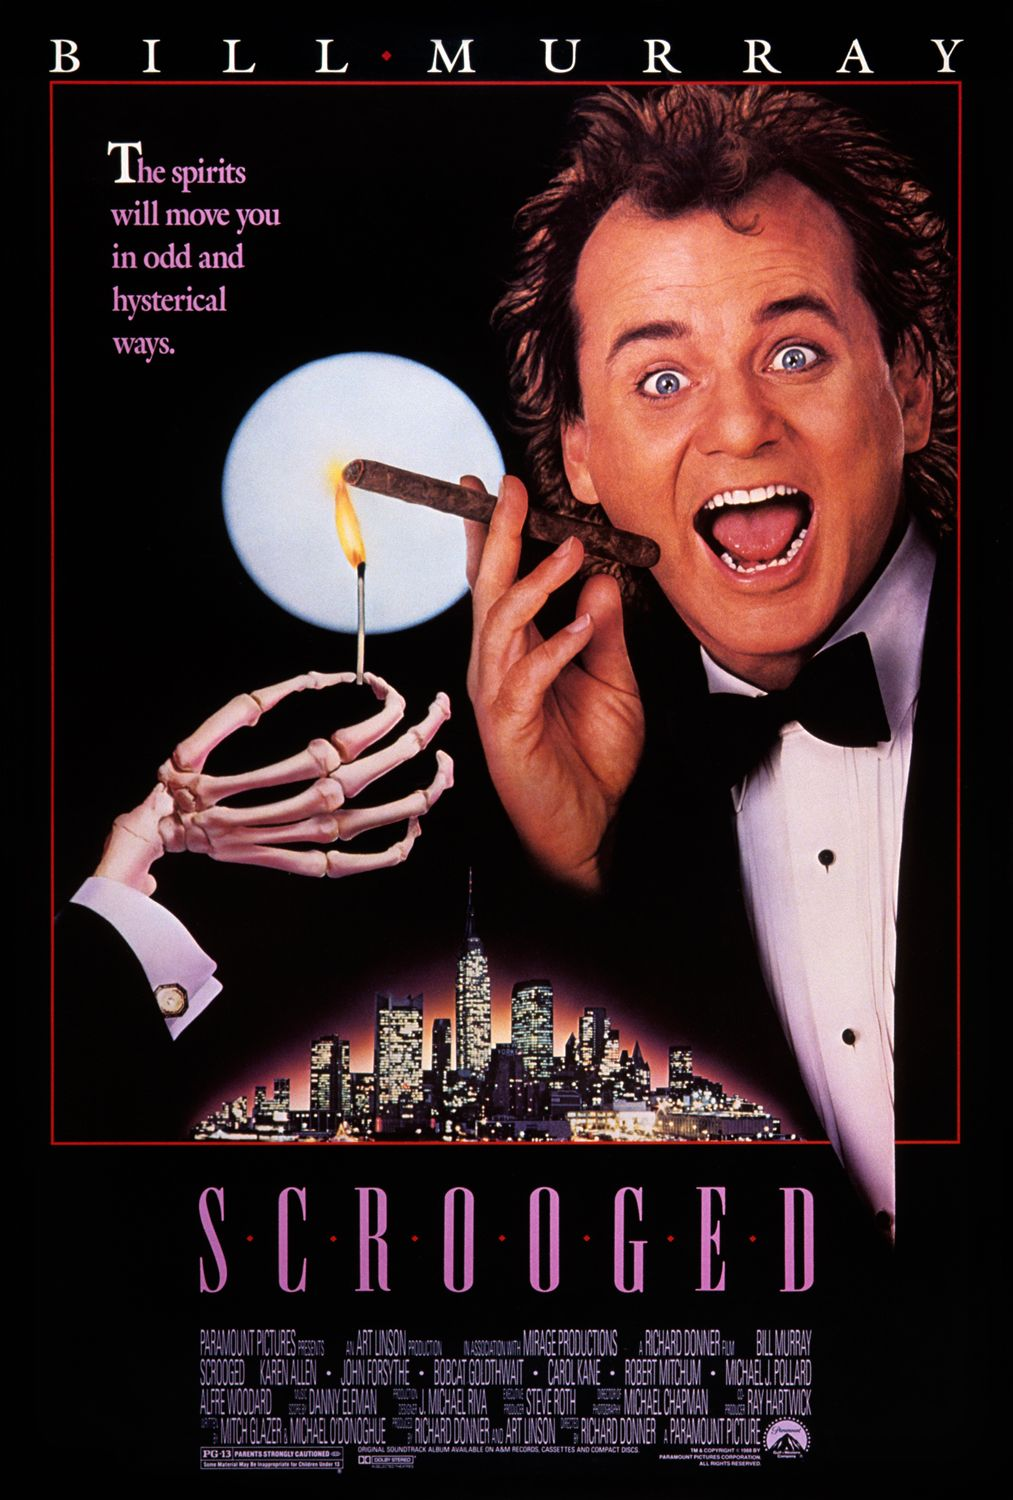 scrooged-movie-poster-1988.jpg